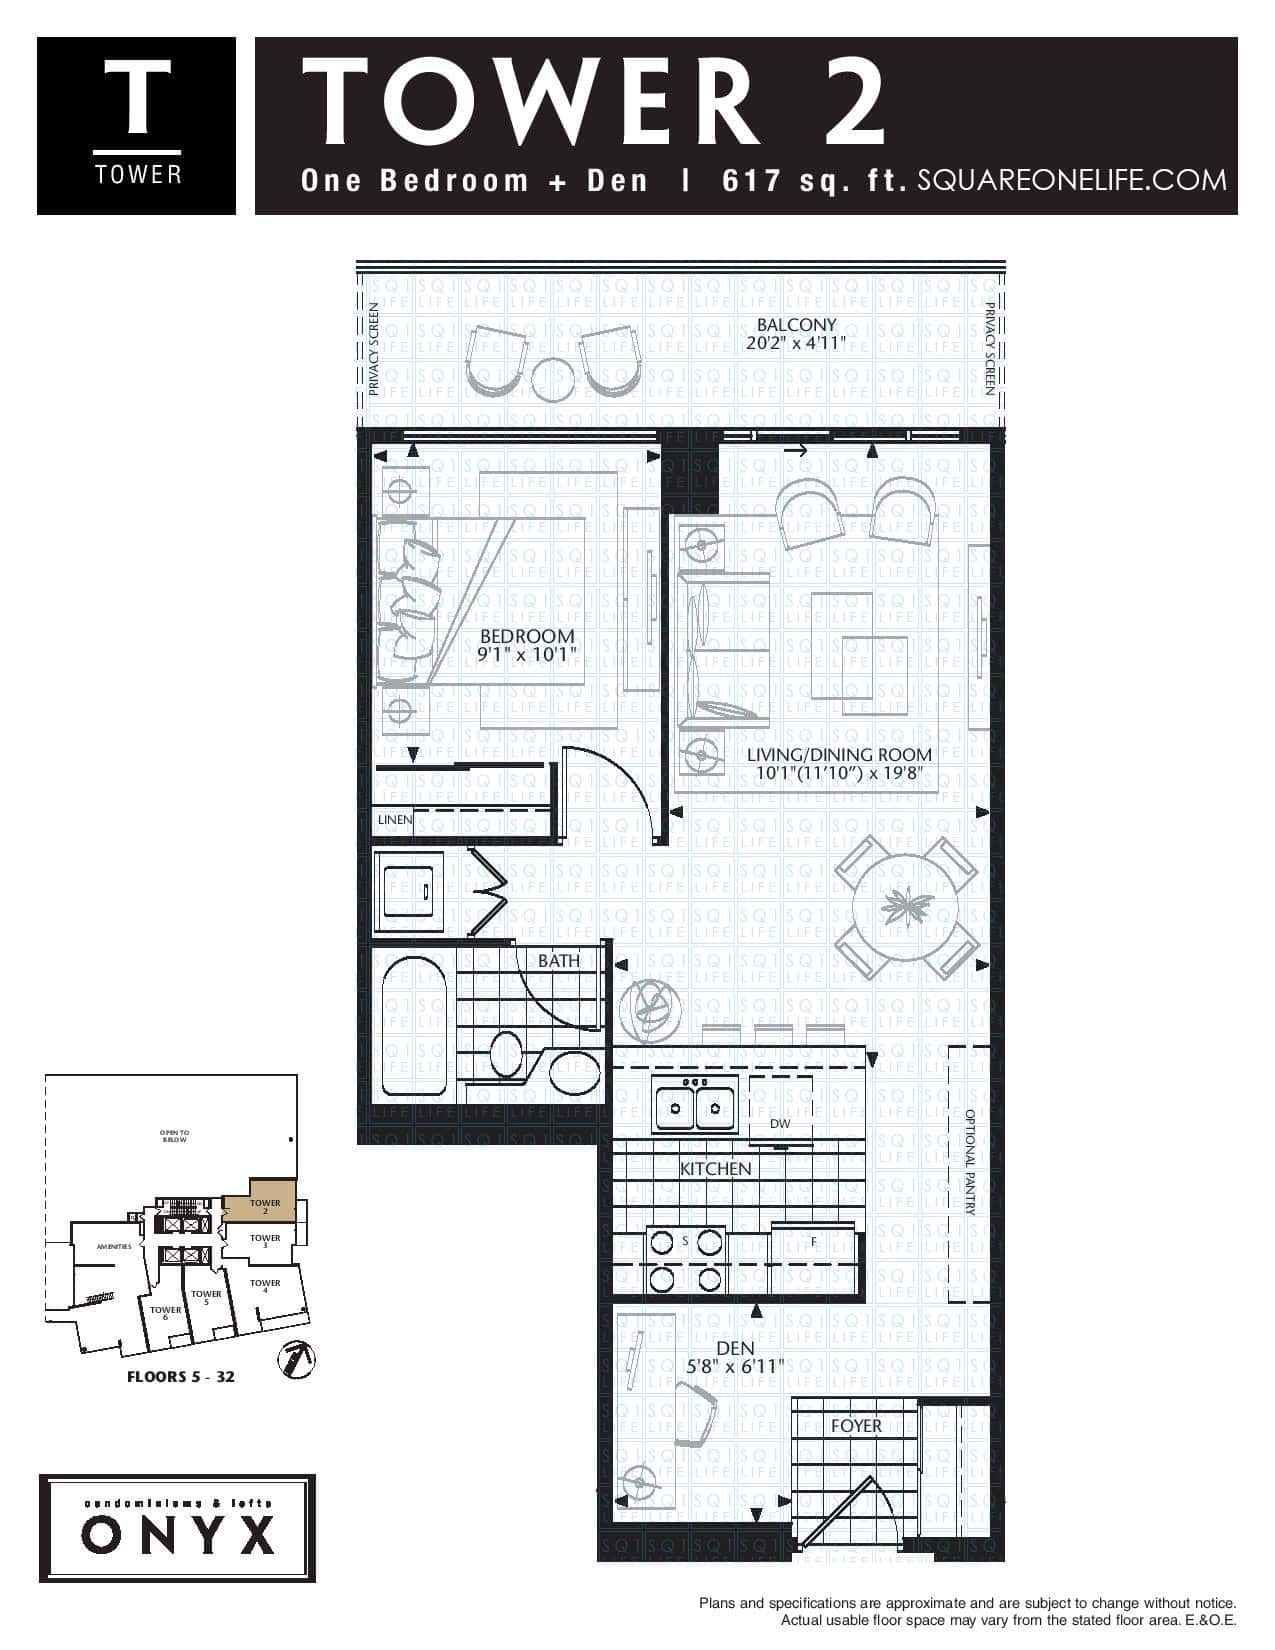 223-Webb-Dr-Onyx-Condo-Floorplan-Tower-2-1-Bed-1-Den-1-Bath onyx condo Onyx Condo 223 Webb Dr Onyx Condo Floorplan Tower 2 1 Bed 1 Den 1 Bath